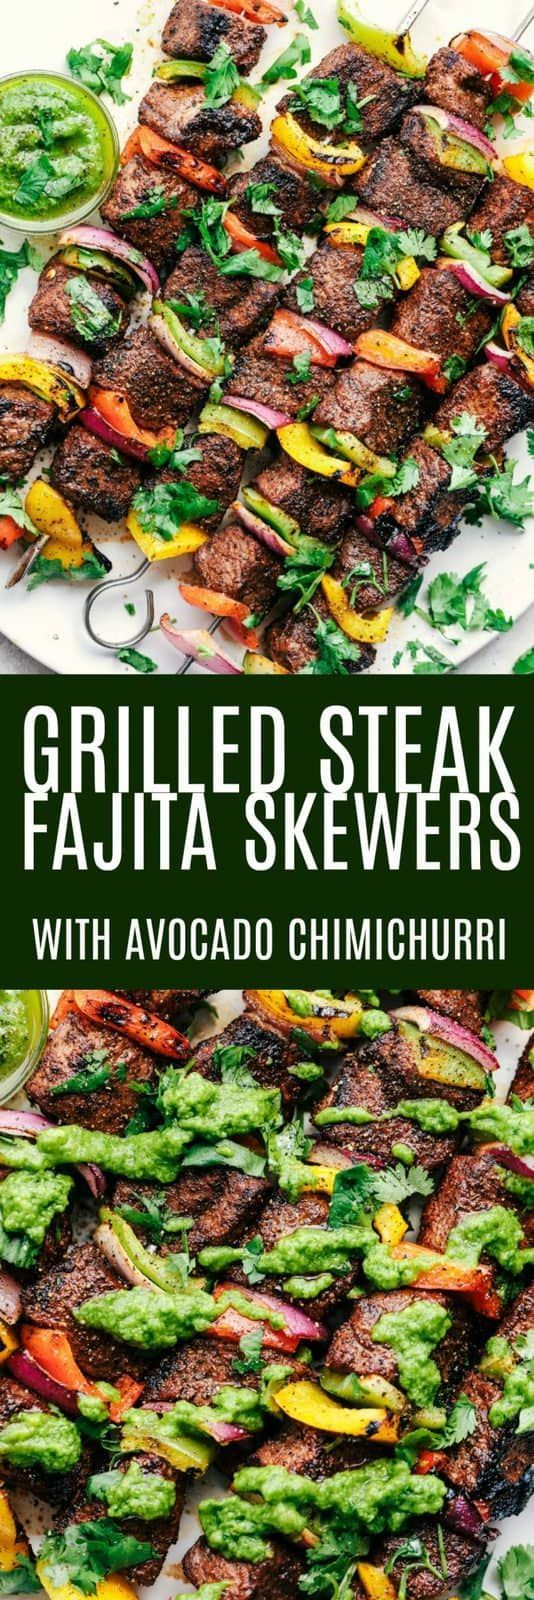 Photo of Grilled steak fajita skewers with avocado chimichurri | The …